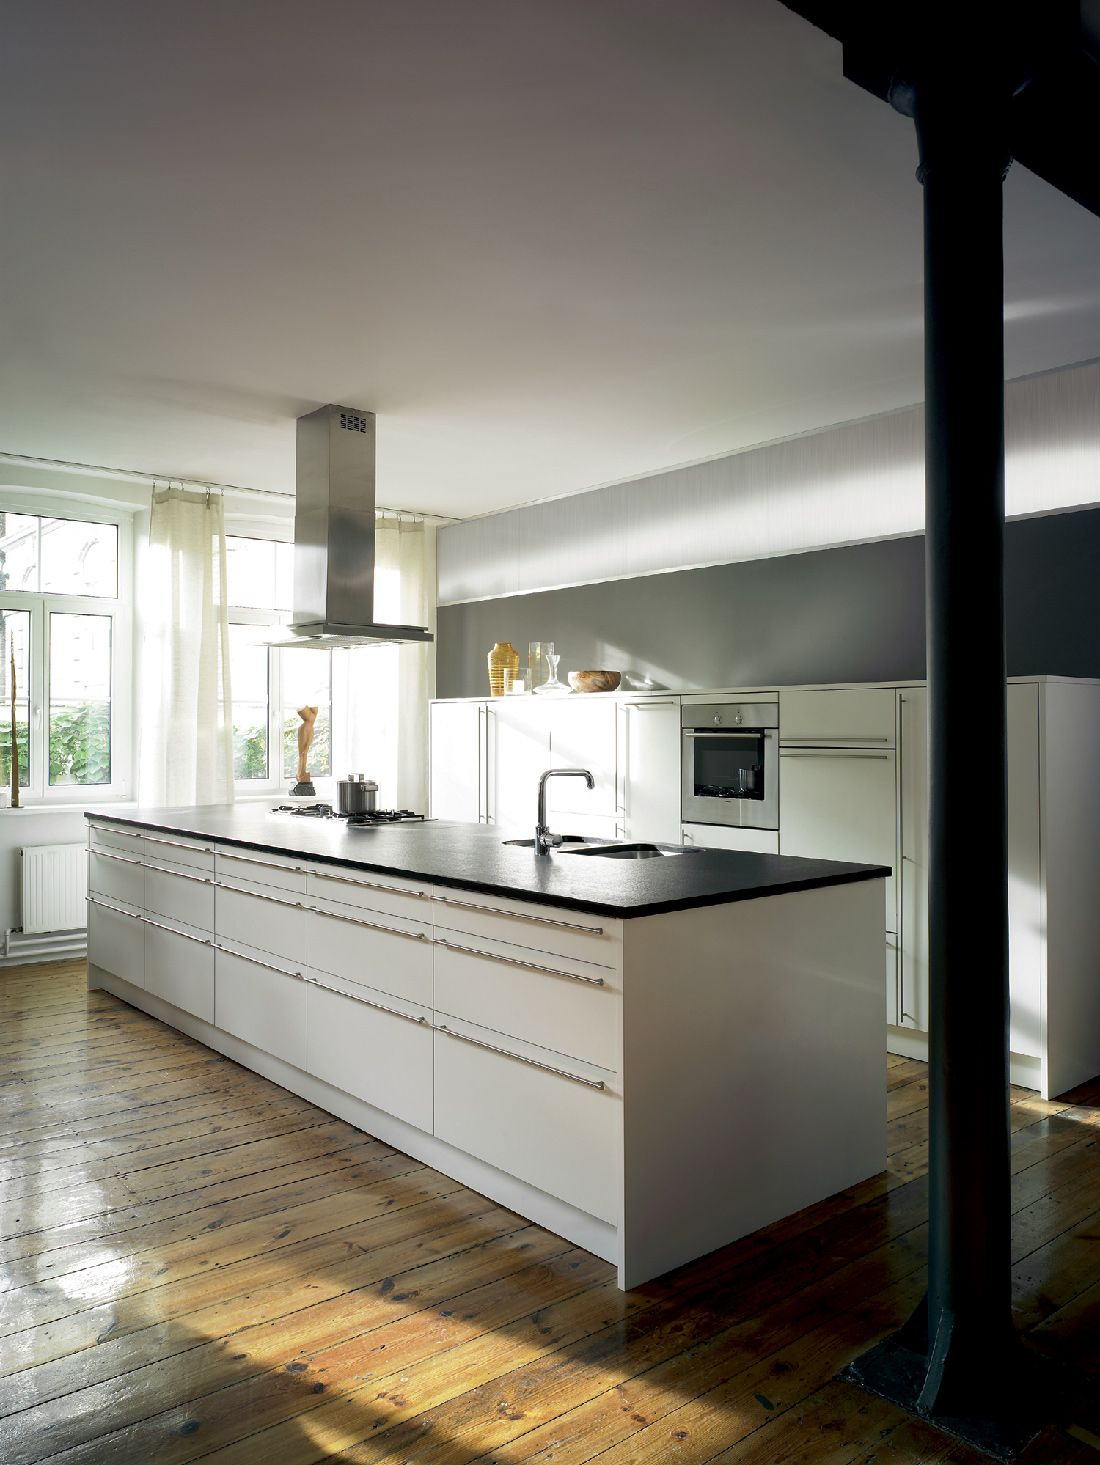 Amati Canada Kitchens and products || Luxury Kitchen fixtures ...